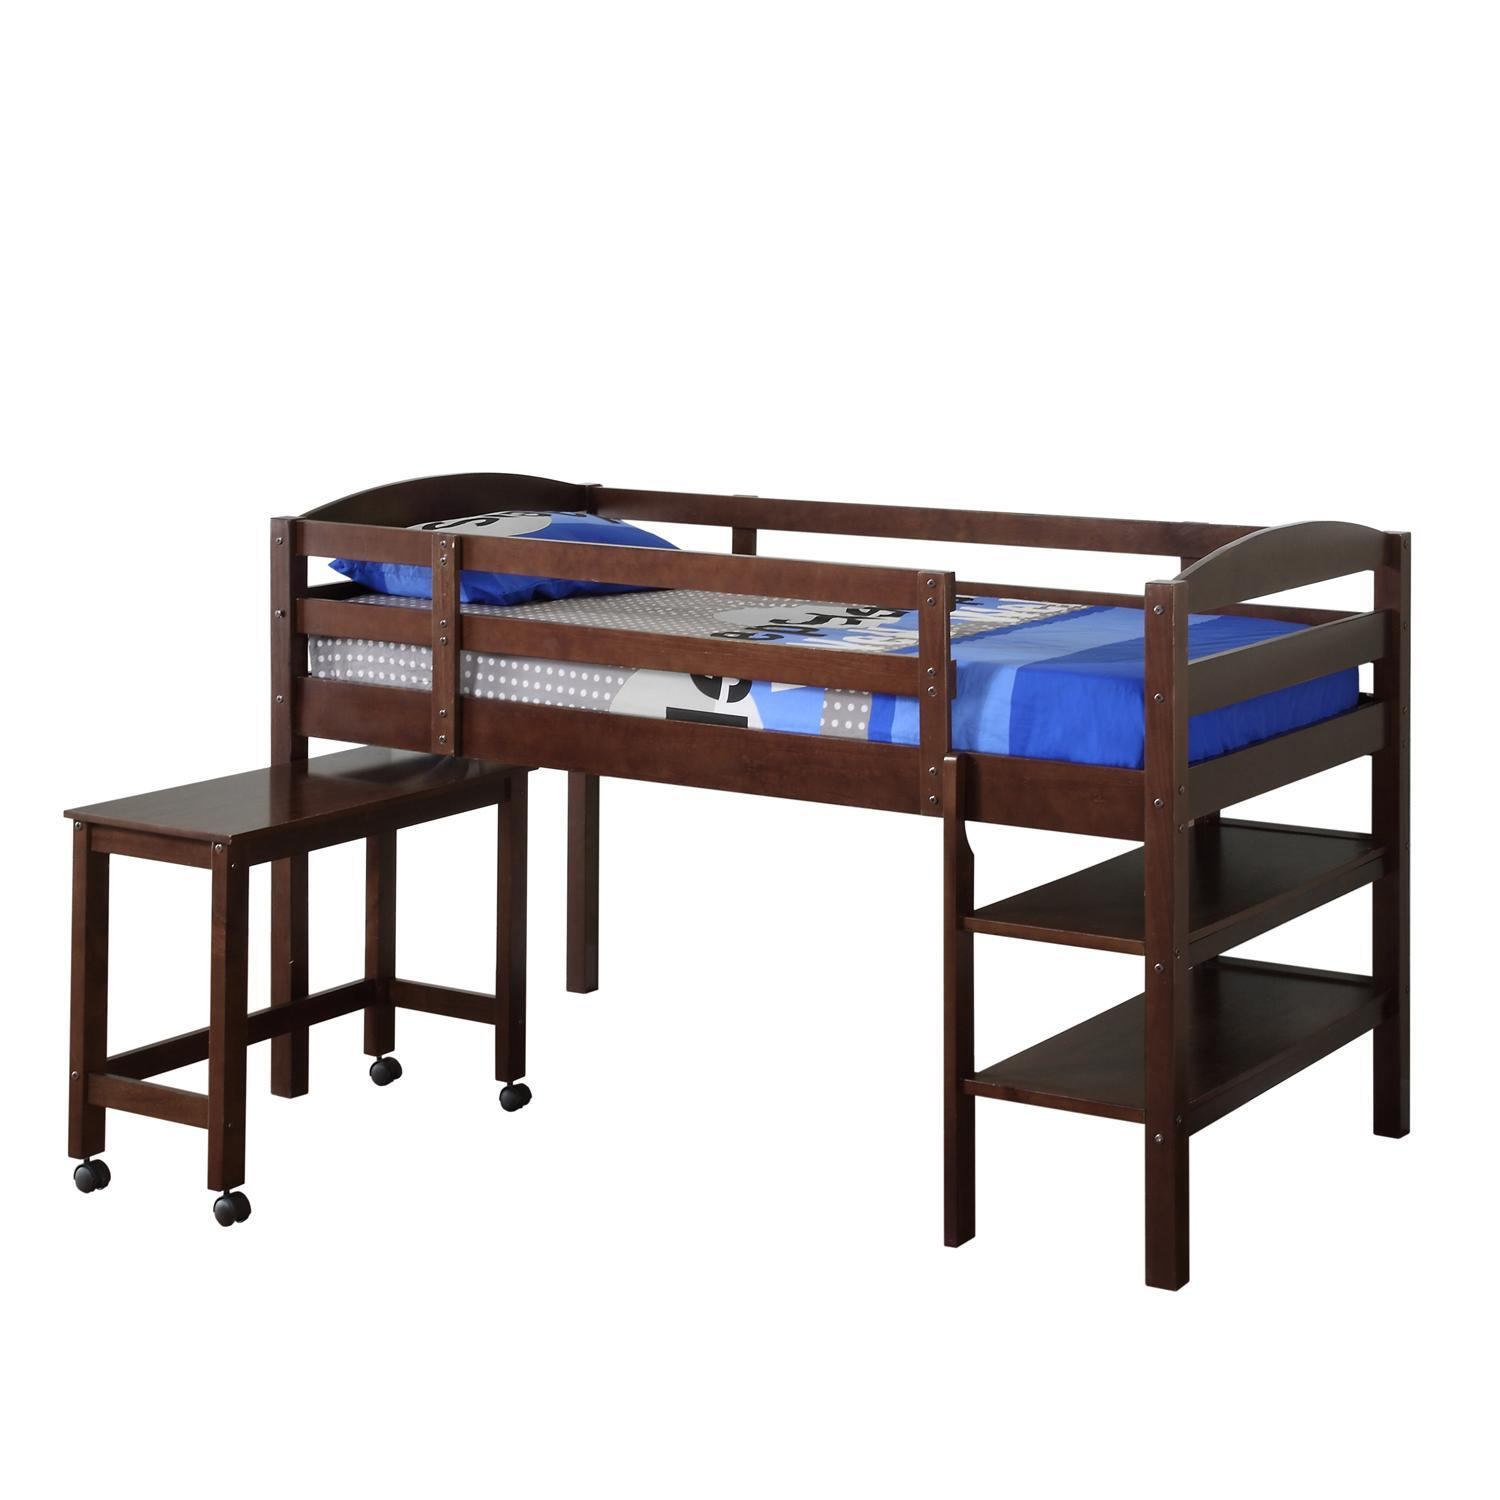 Walker Edison Twin Wood Loft Bed w/ Desk by OJ Commerce $449.00 - $620 ...